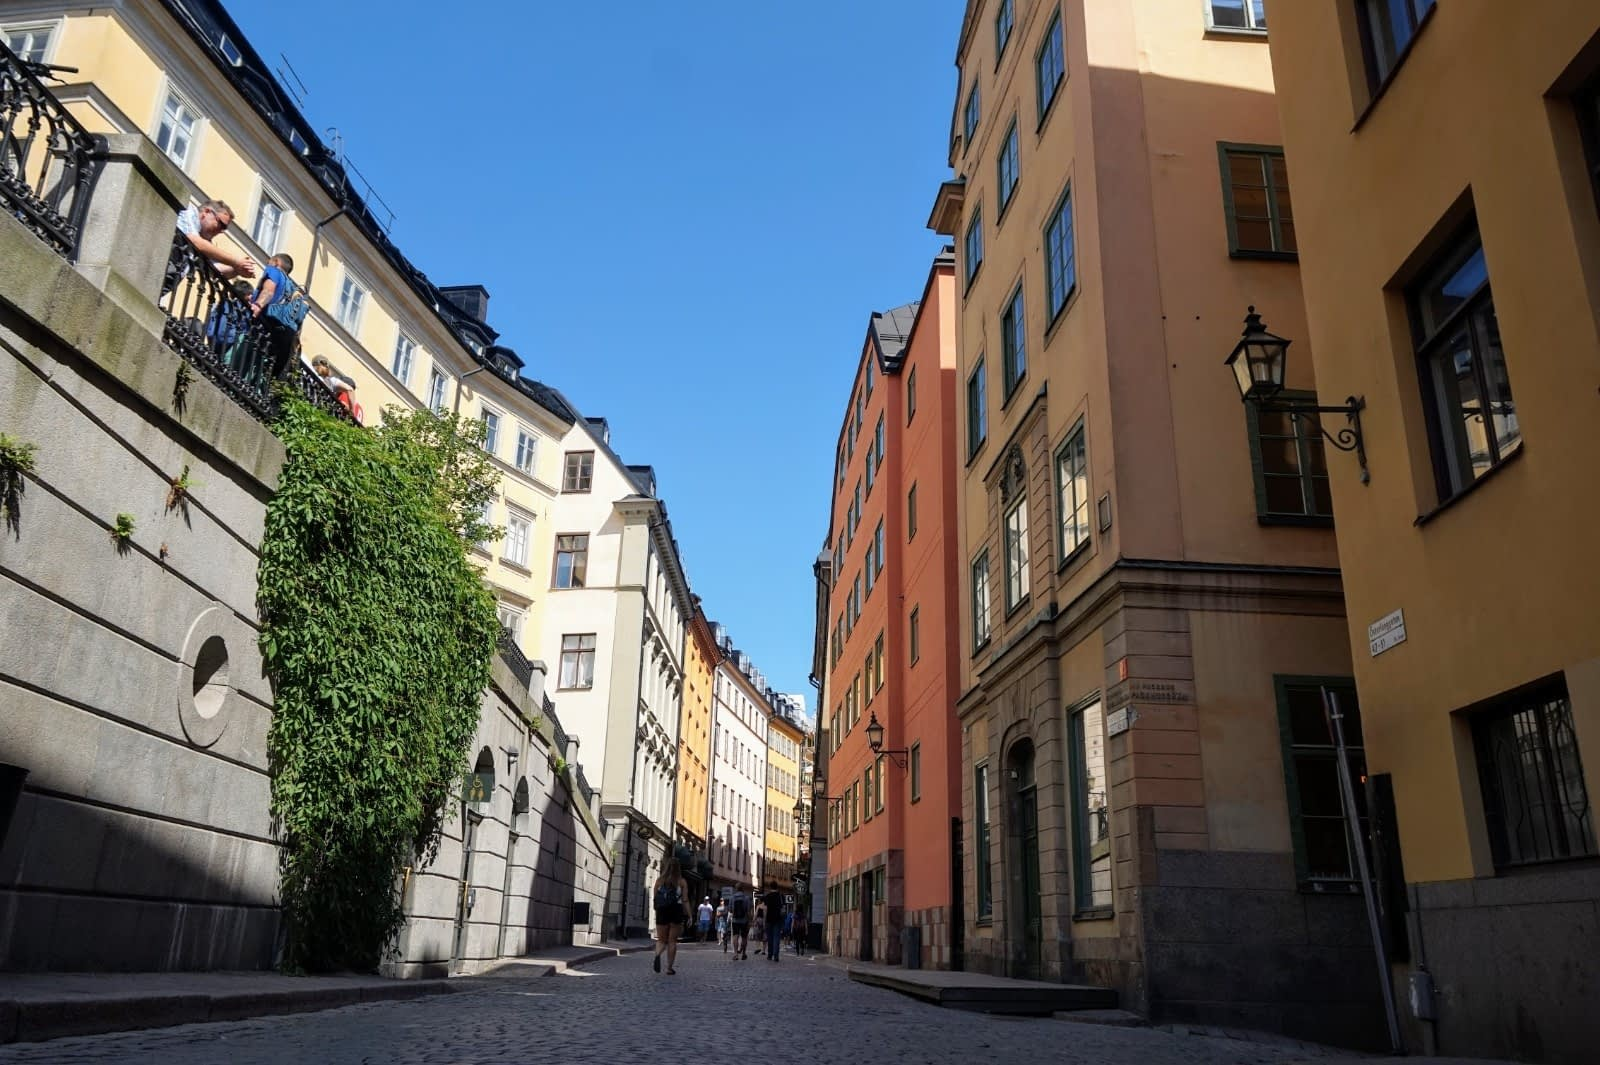 Colourful Houses & Narrow Streets of Gamla Stan, Stockholm 16